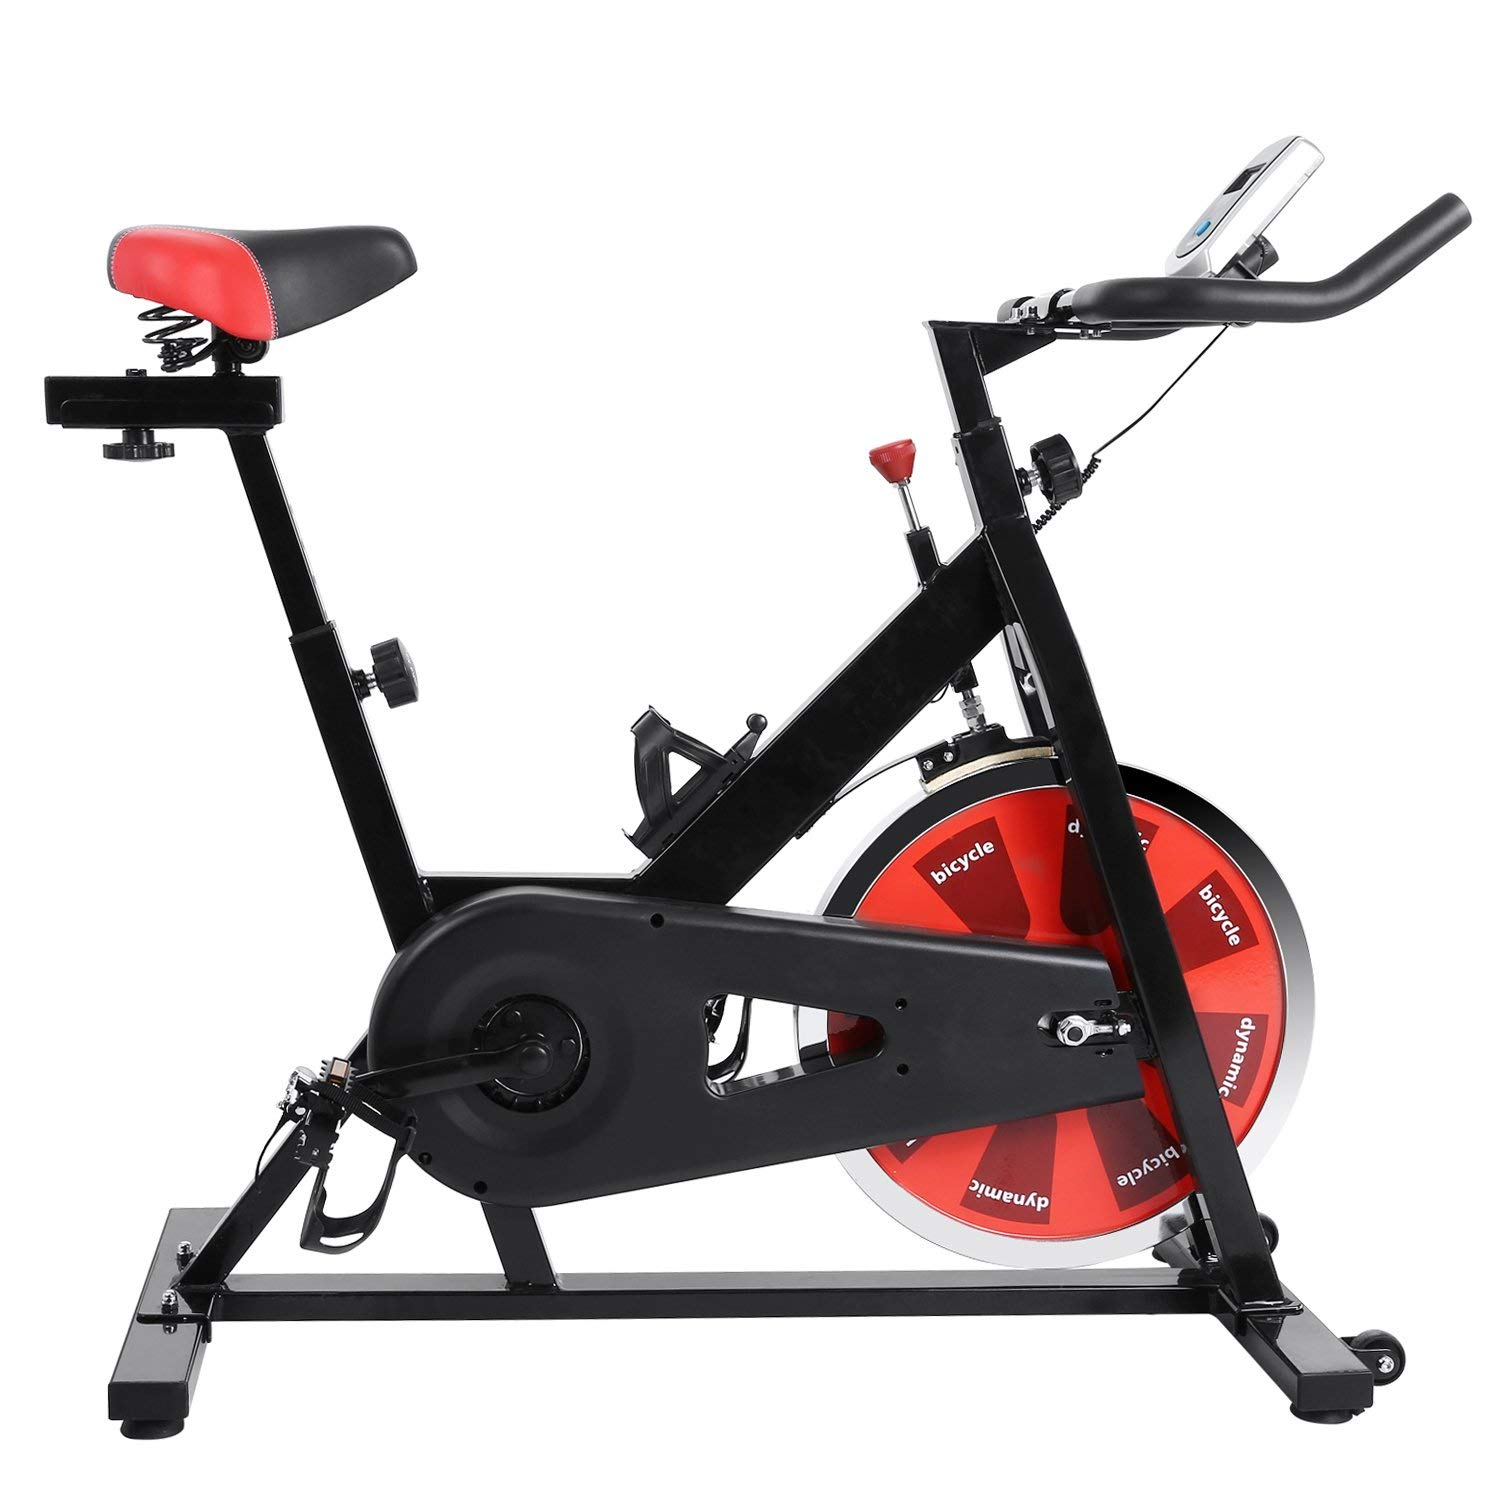 Ferty Belt Drive Indoor Cycling Bike with Monitor, Magnetic Cycling Trainer Exercise Bike for Cardio Exercise (US Stock) by Ferty